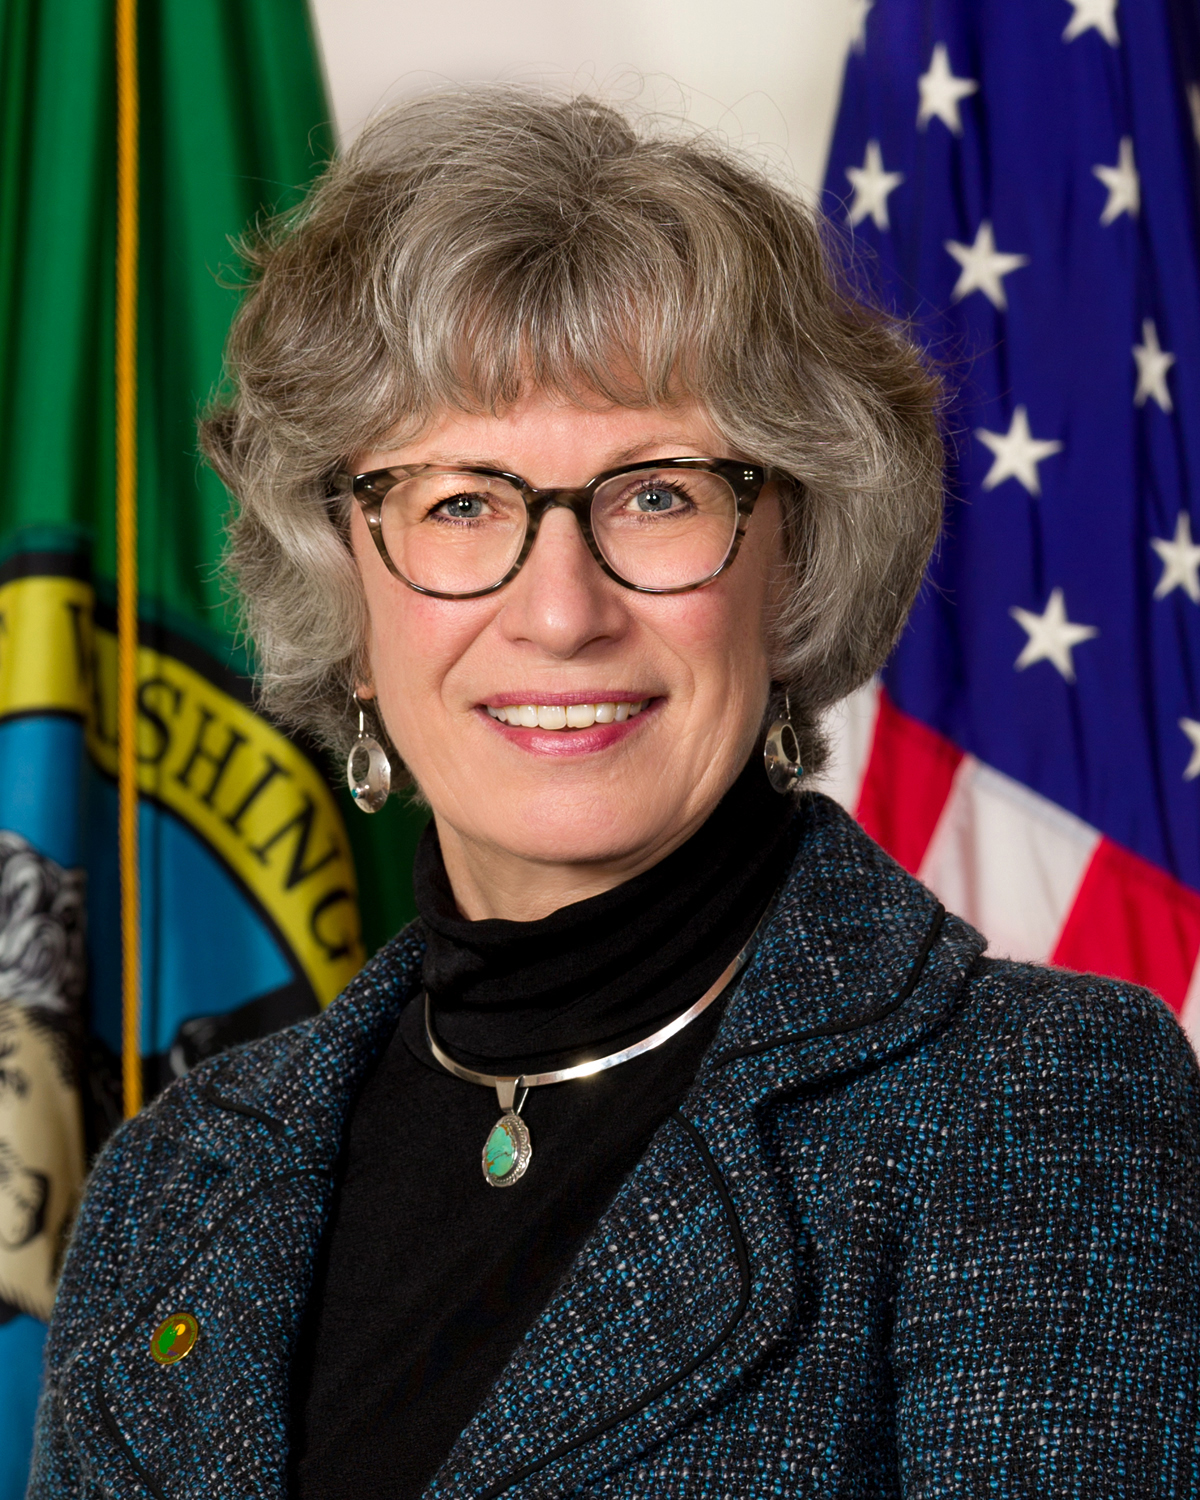 Councilmember Phillippa Kassover